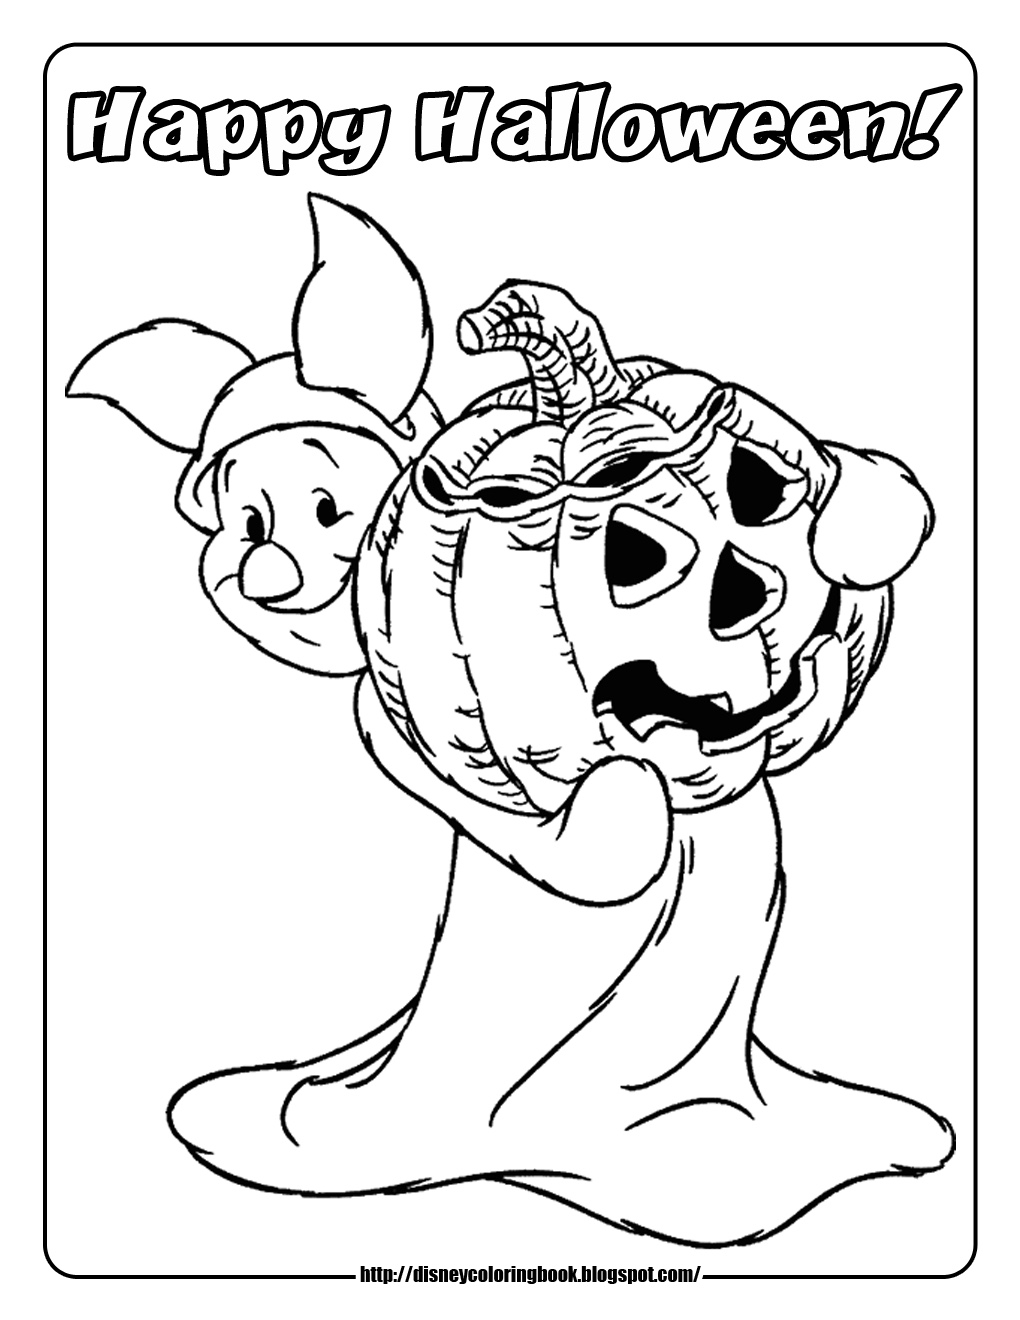 Disney Coloring Pages and Sheets for Kids: Pooh and Friends ...